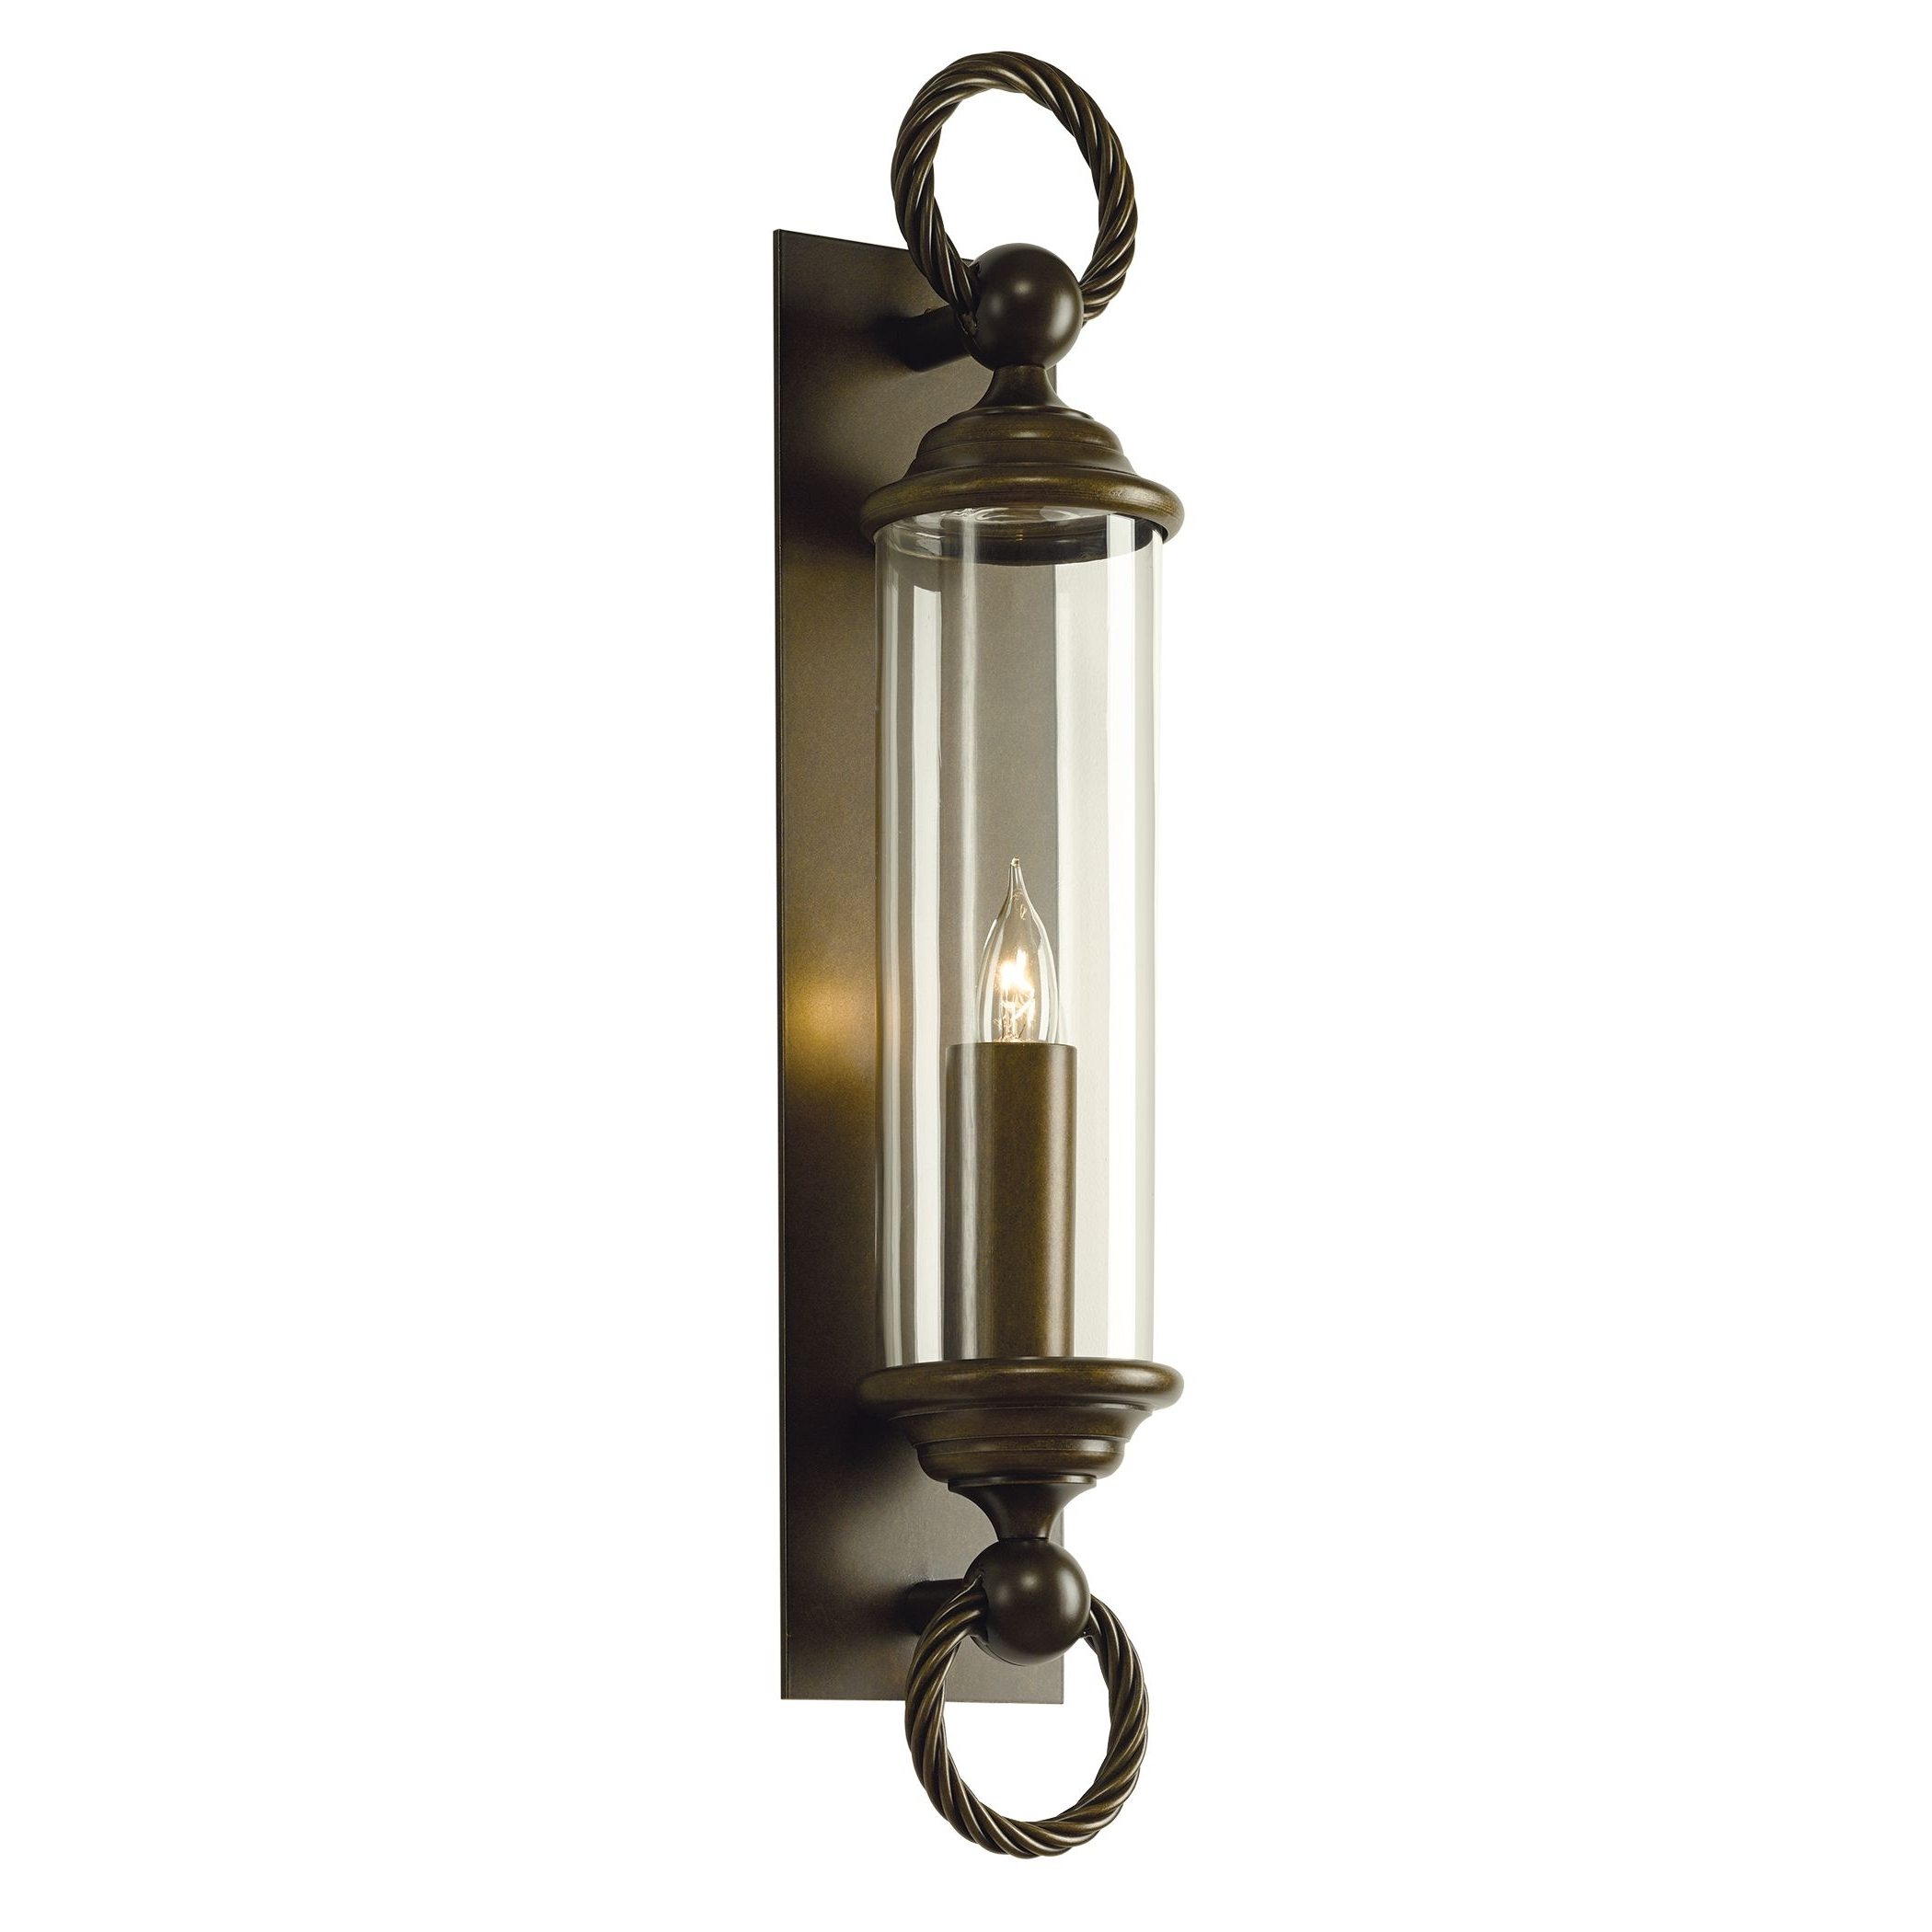 Large Outdoor Wall Lanterns Pertaining To 2019 Cavo Large Outdoor Wall Sconce – Hubbardton Forge (View 7 of 20)